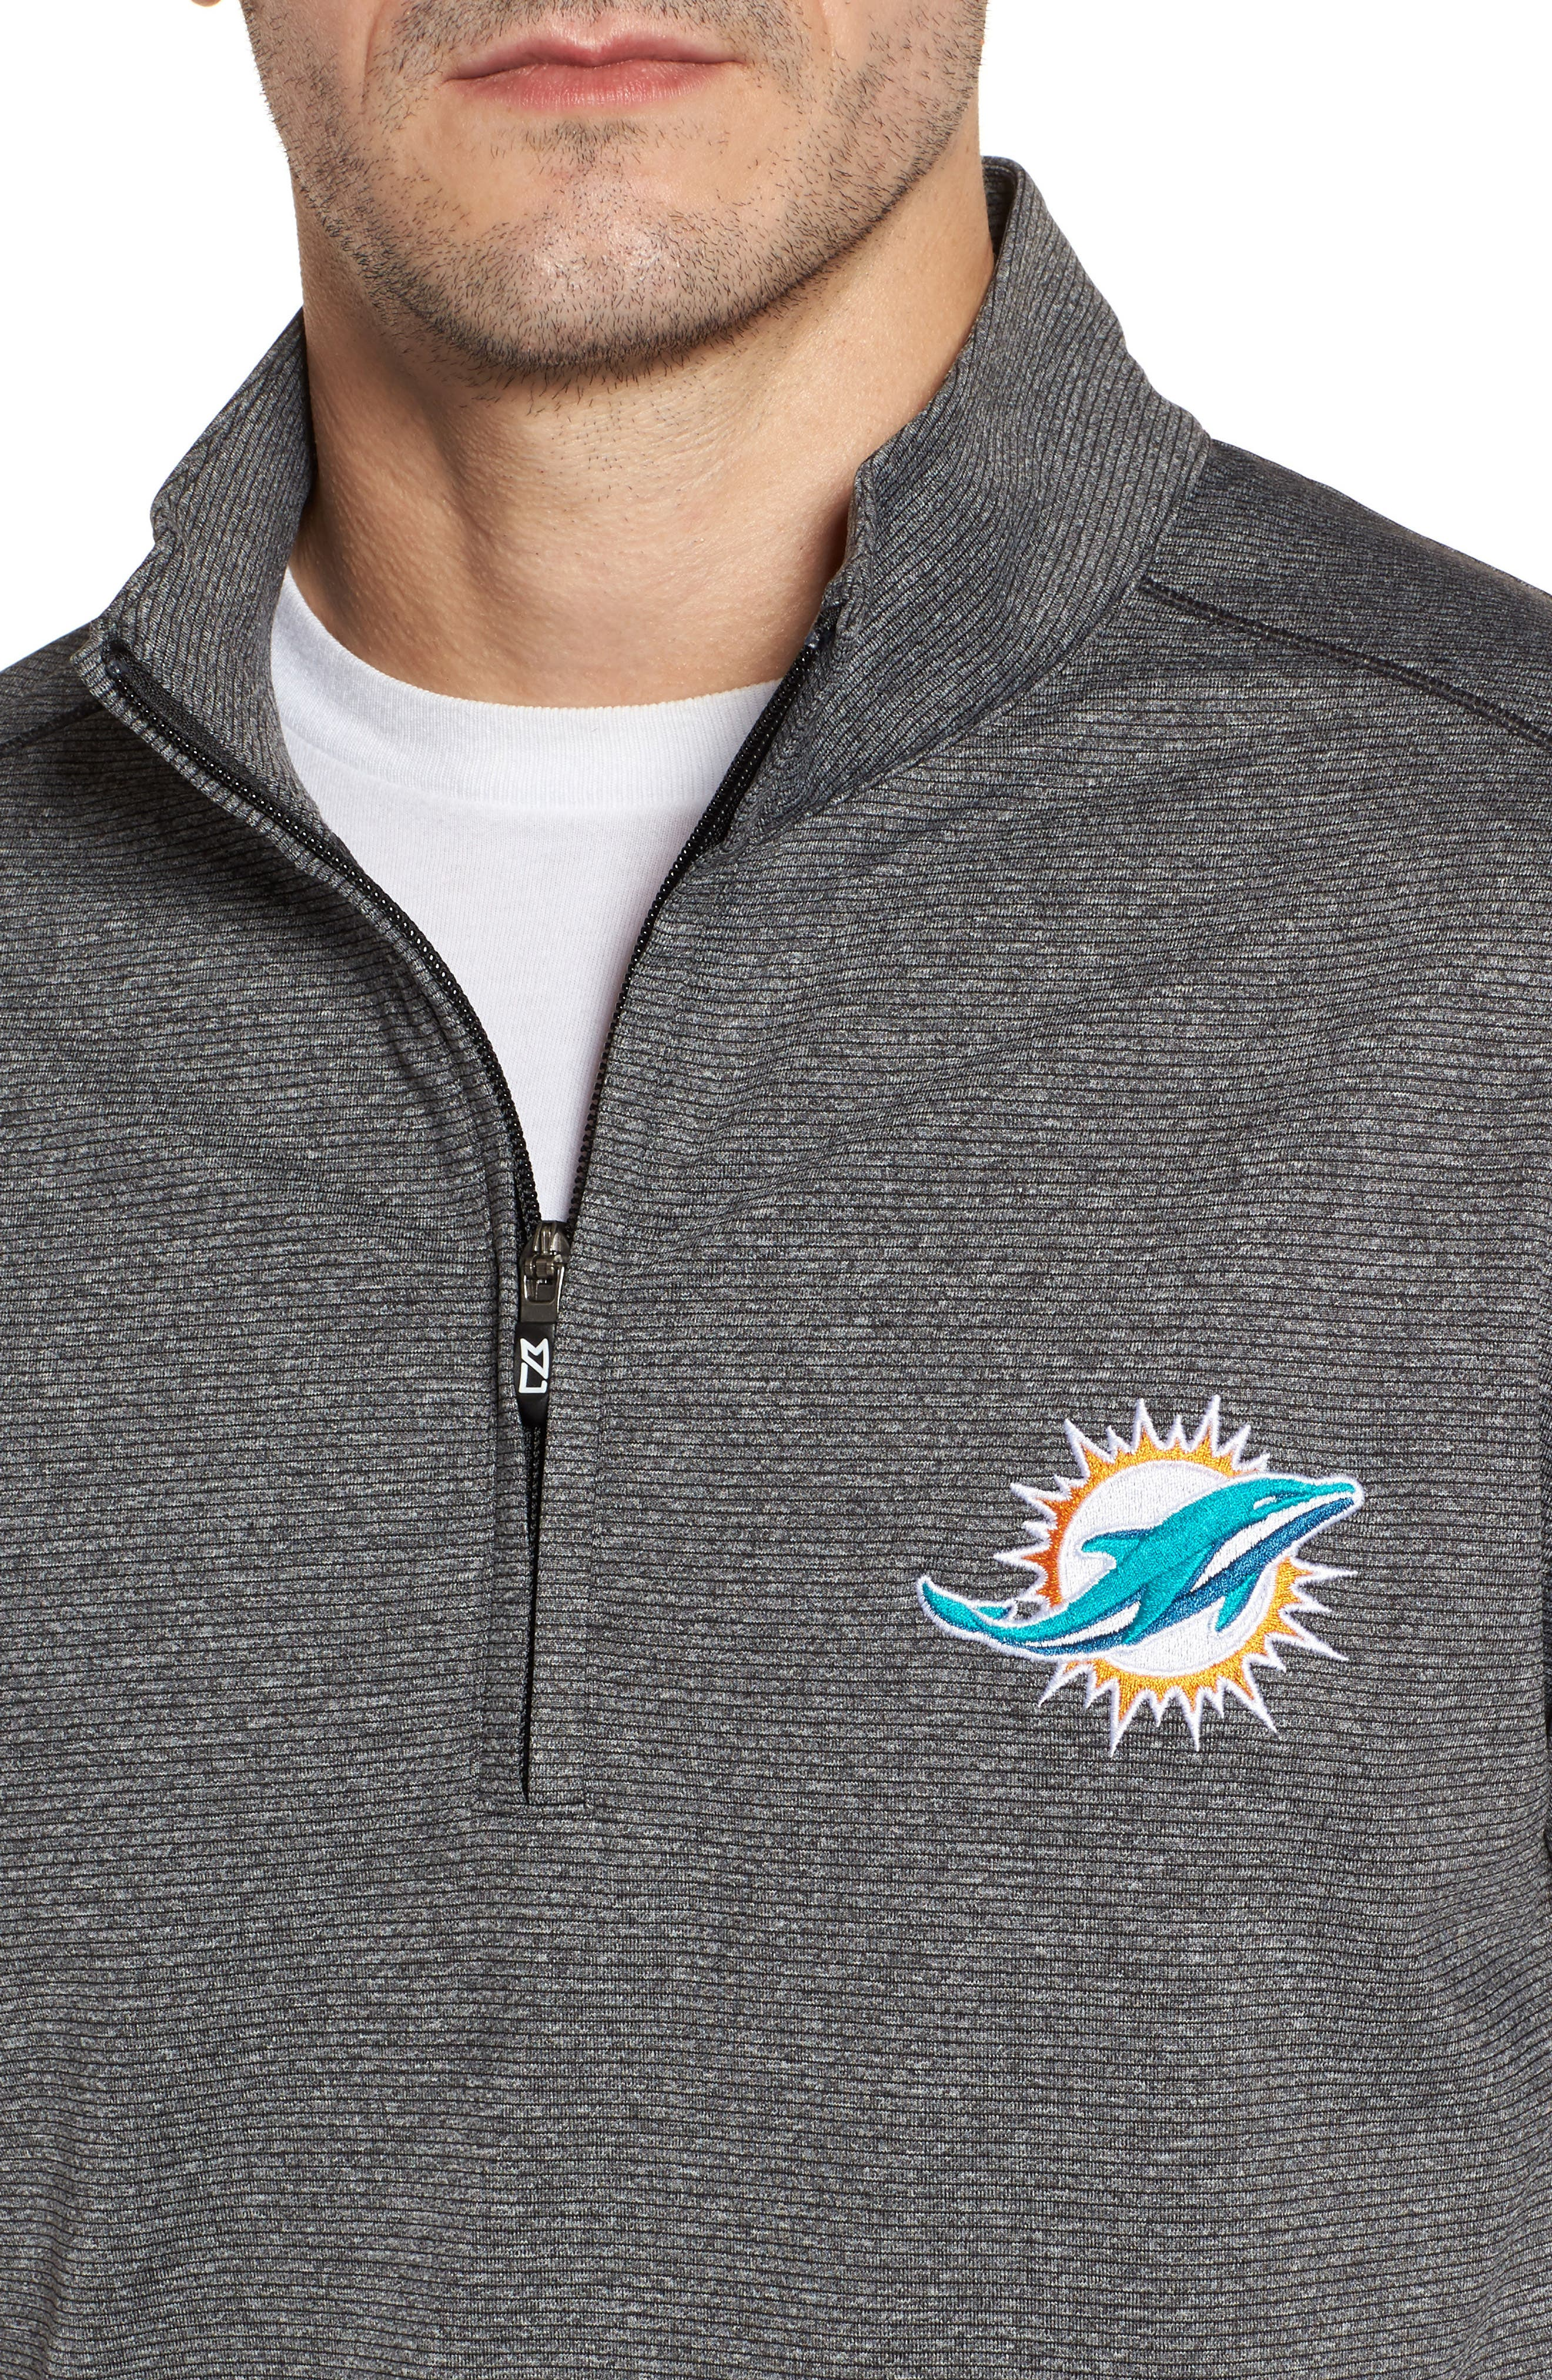 Cutter & Butter Shoreline - Miami Dolphins Half Zip Pullover,                             Alternate thumbnail 4, color,                             Charcoal Heather